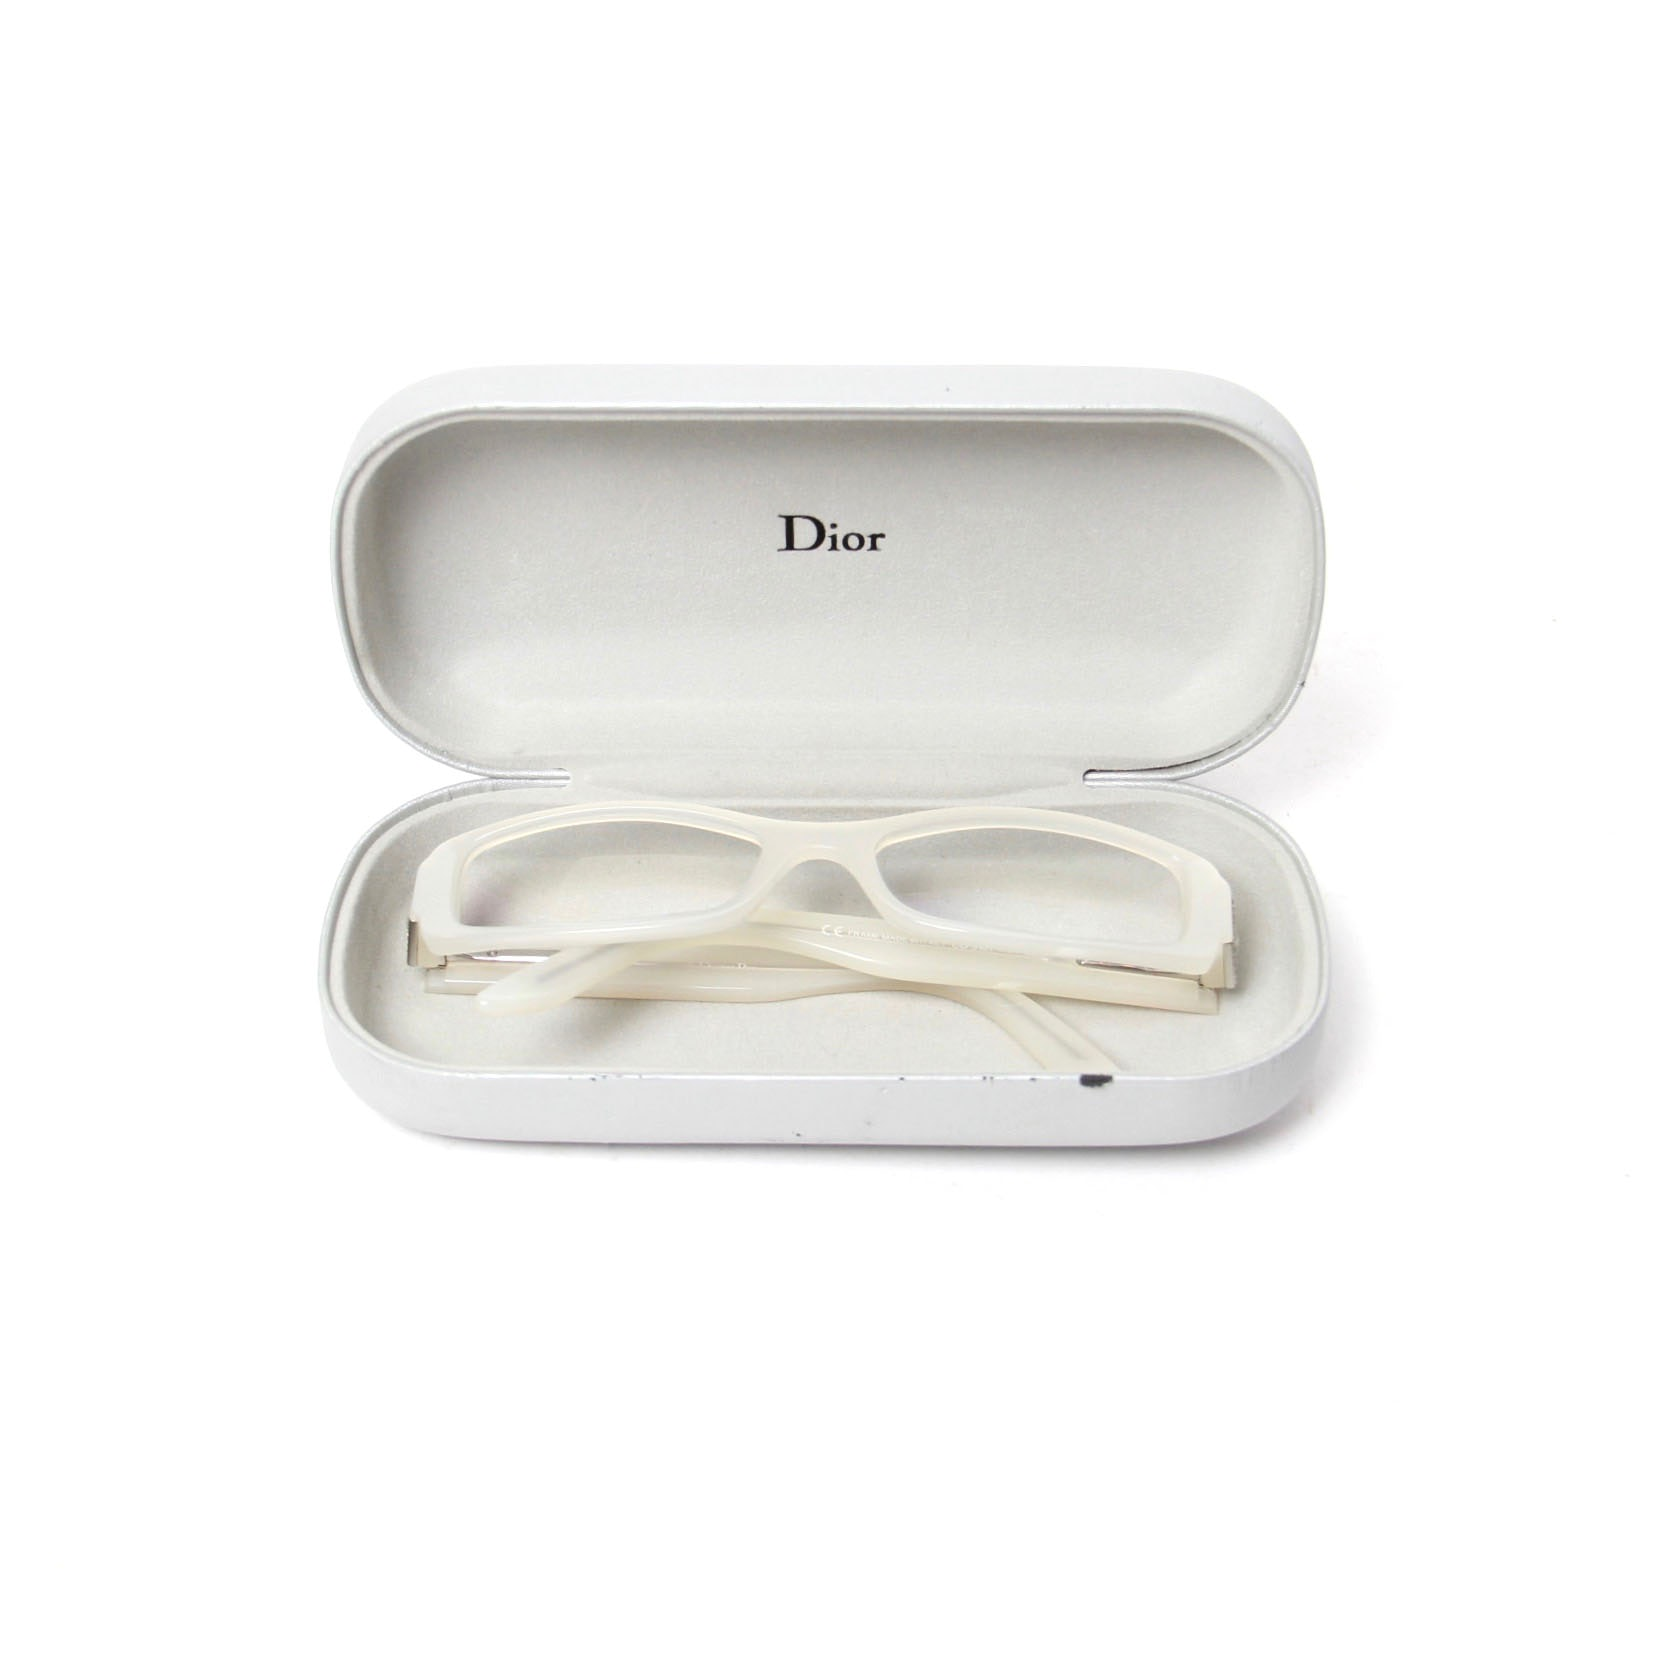 Christian Dior Bifocal Eyeglasses